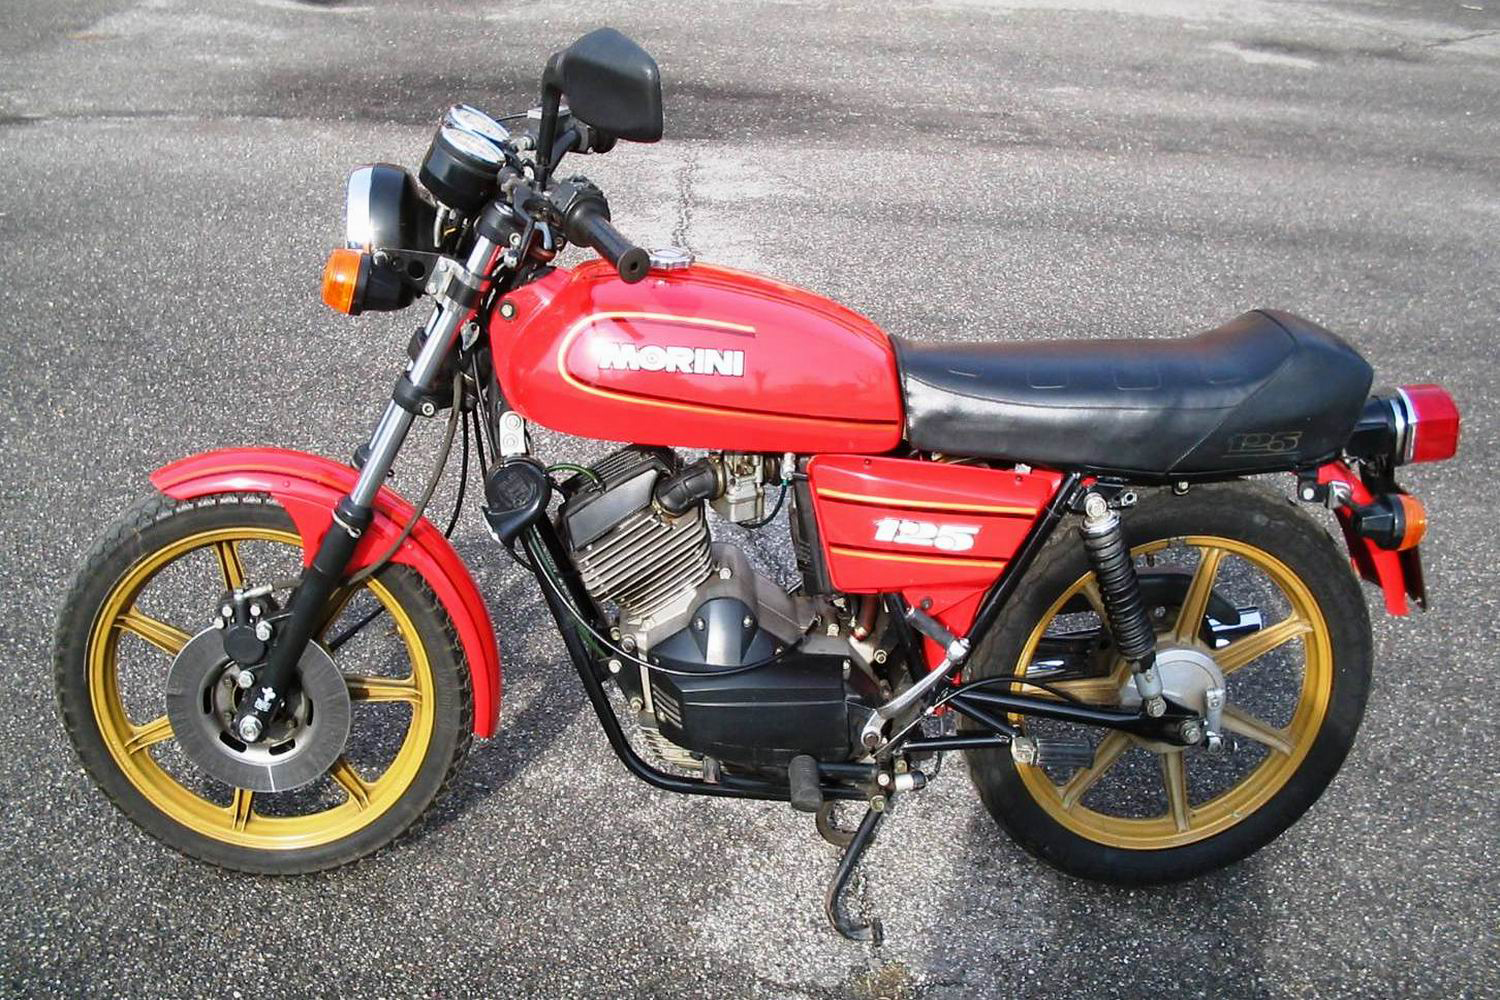 Moto morini 125 photo - 2